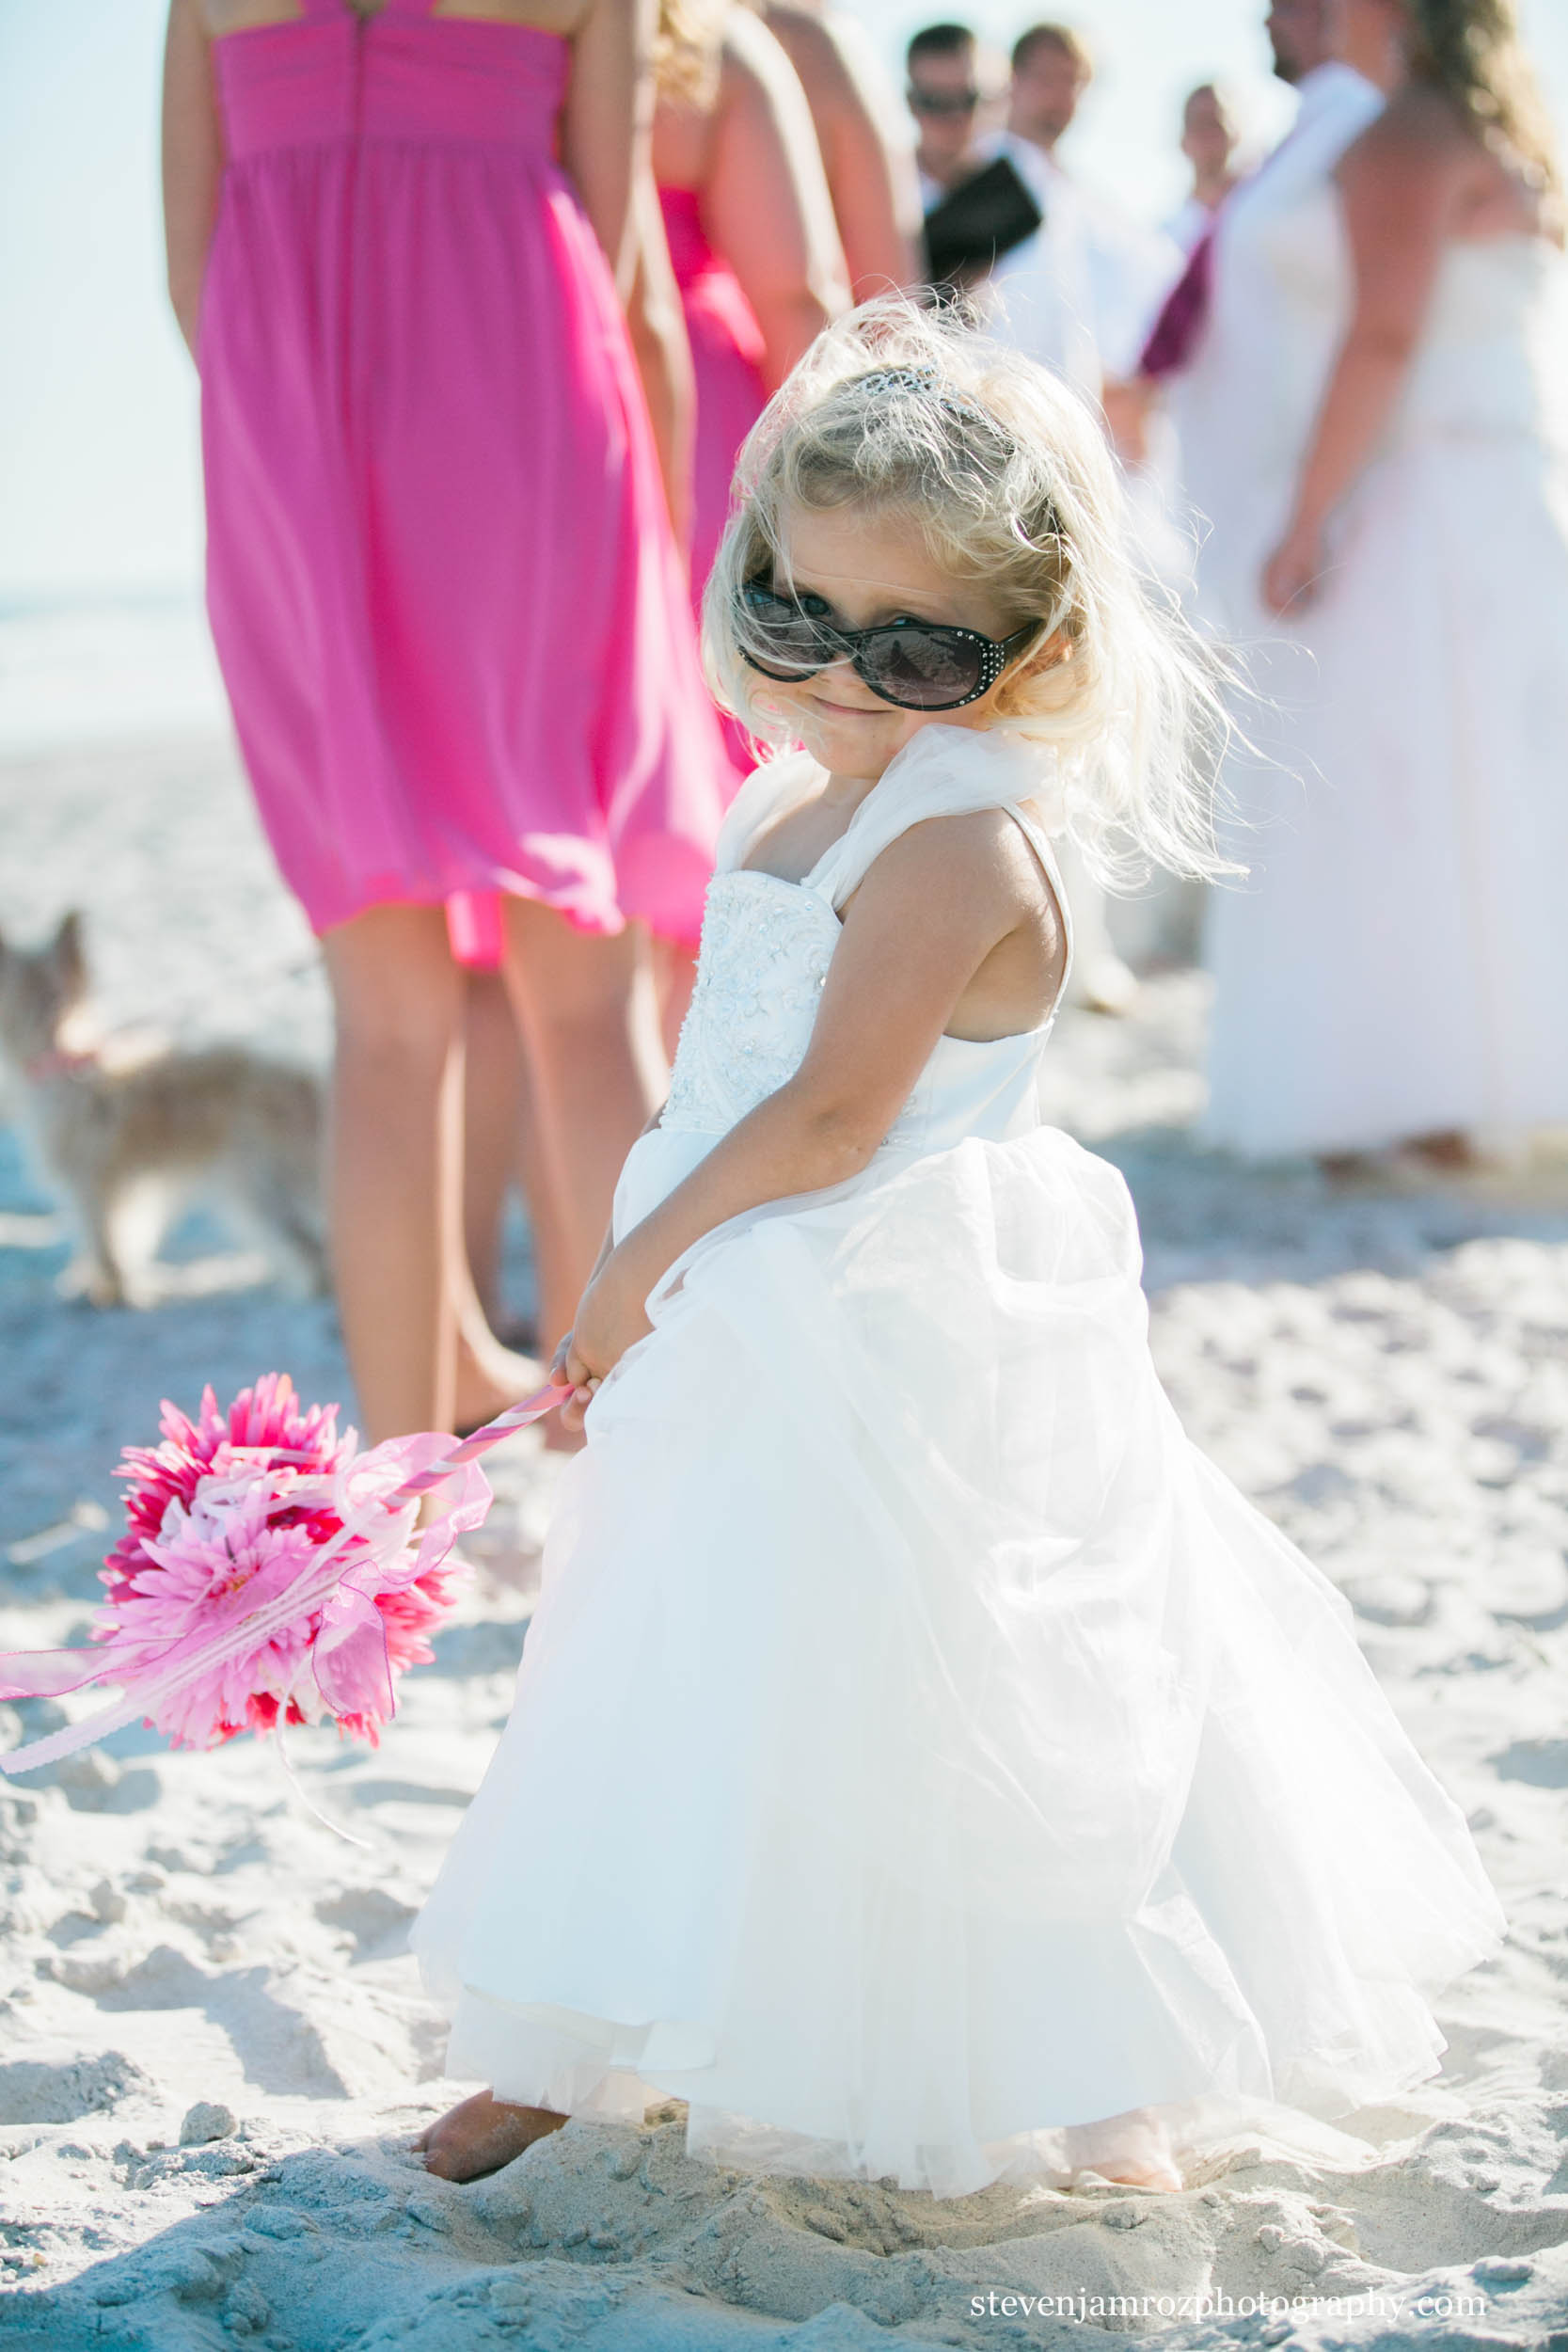 topsail-island-wedding-beach-flower-girl-nc-steven-jamroz-photography-0363.jpg